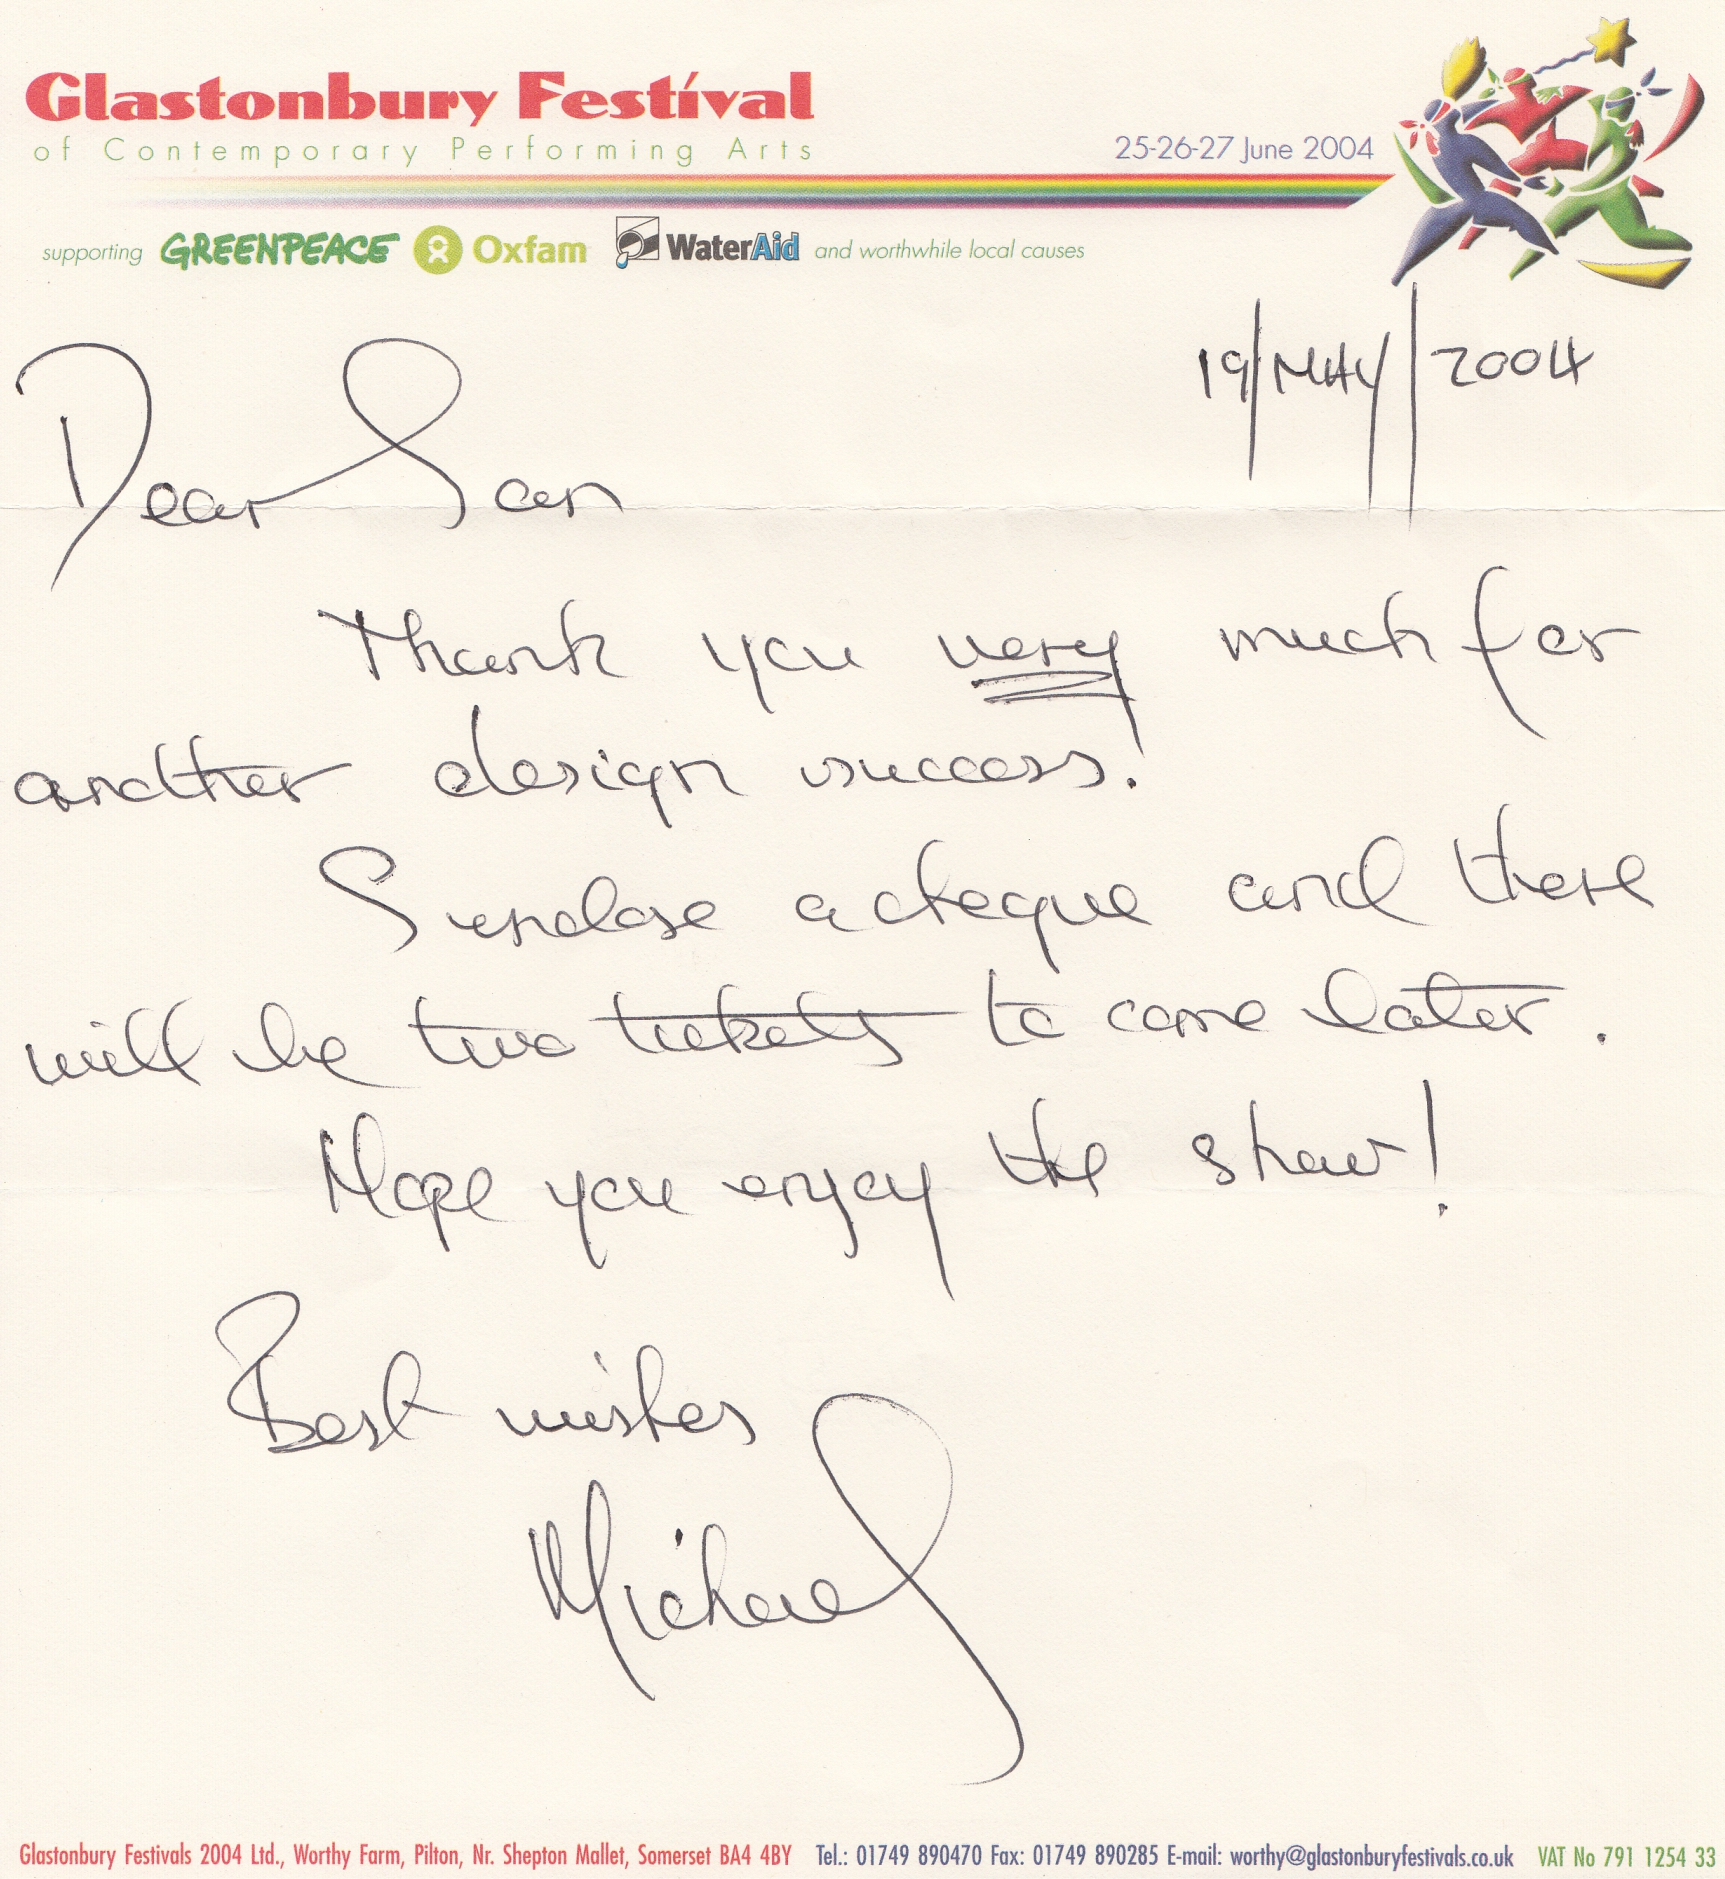 Image of letter from Michael Eavis